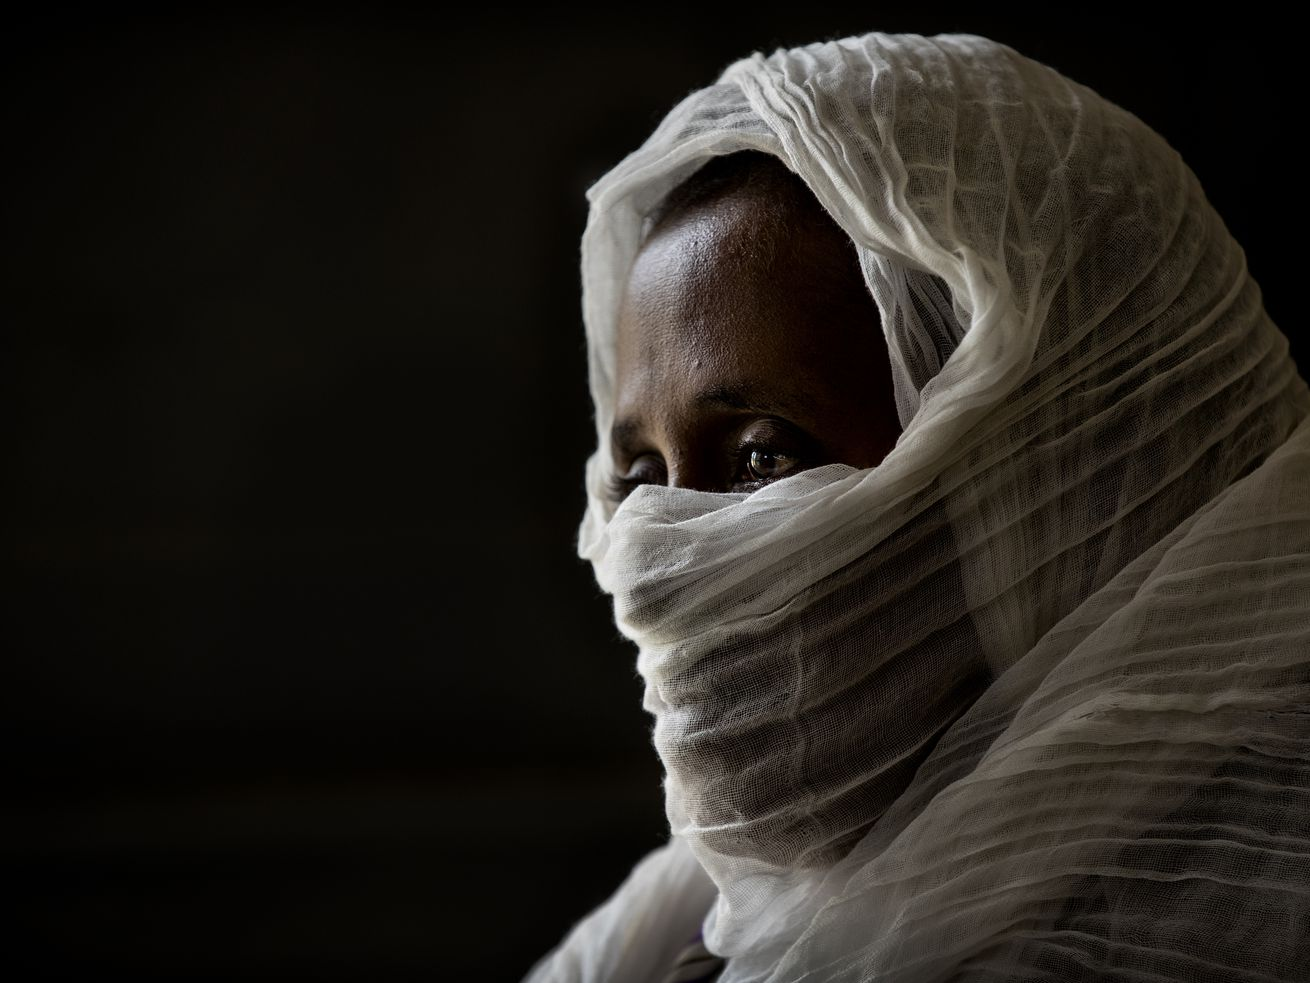 A 40-year-old woman who was says she was held captive and repeatedly raped by 15 Eritrean soldiers over a period of a week in a remote village near the Eritrea border, speaks during an interview at a hospital in Mekele, in the Tigray region of northern Ethiopia, on Friday, May 14, 2021.